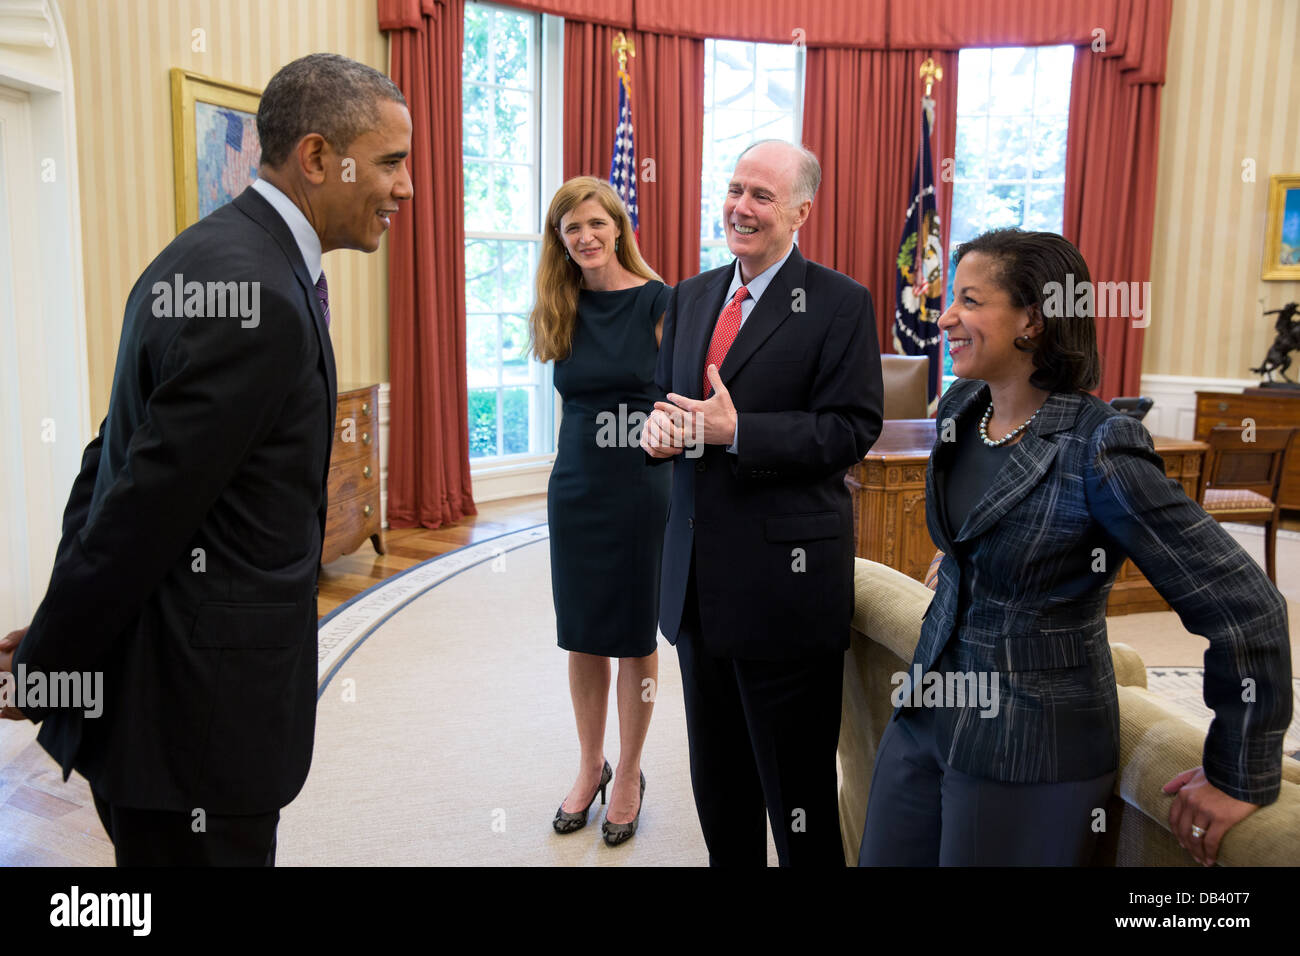 President Barack Obama talks with, from left: Samantha Power, former Senior Director for Multilateral Affairs and - Stock Image